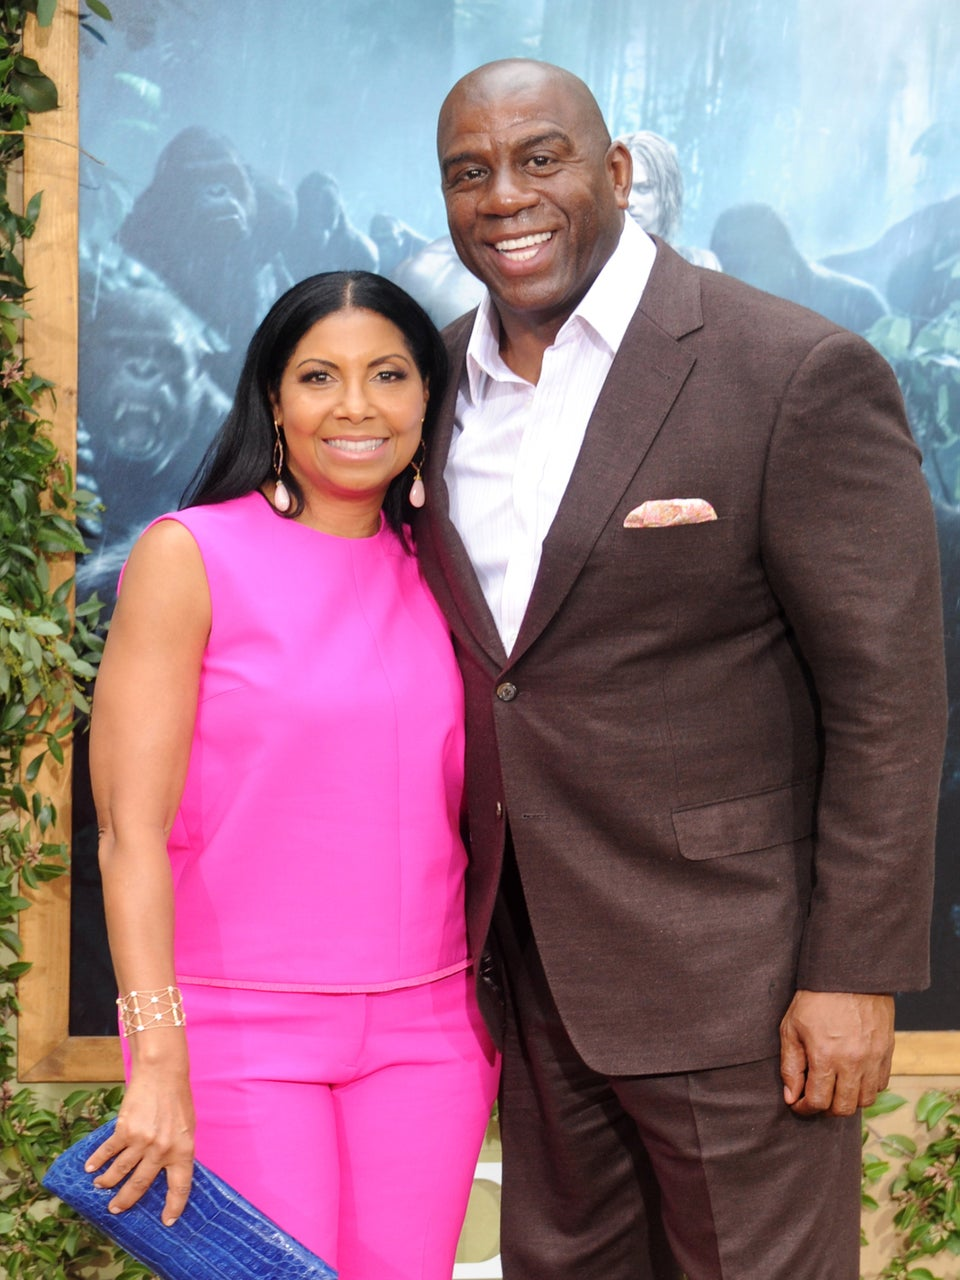 Magic Johnson Credits Wife with Helping Him Get Through HIV Diagnosis: 'If Cookie Had Left, I'd Probably Be Dead Now'